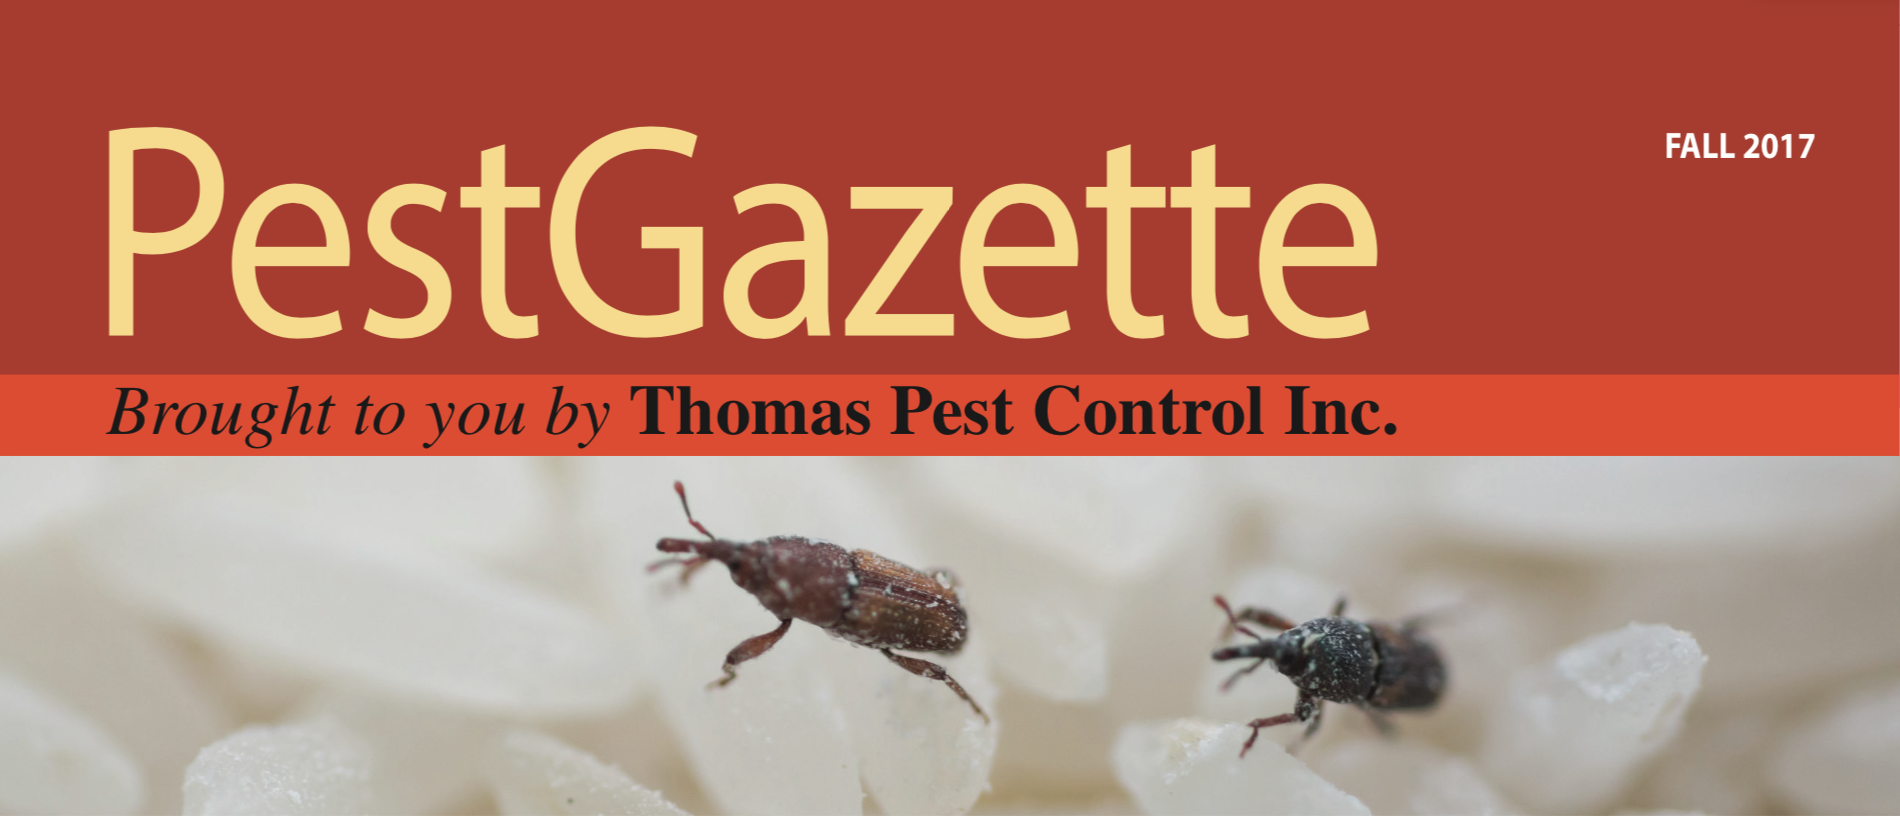 Thomas-Pest-Control-Fall-2017-Pest-Gazette